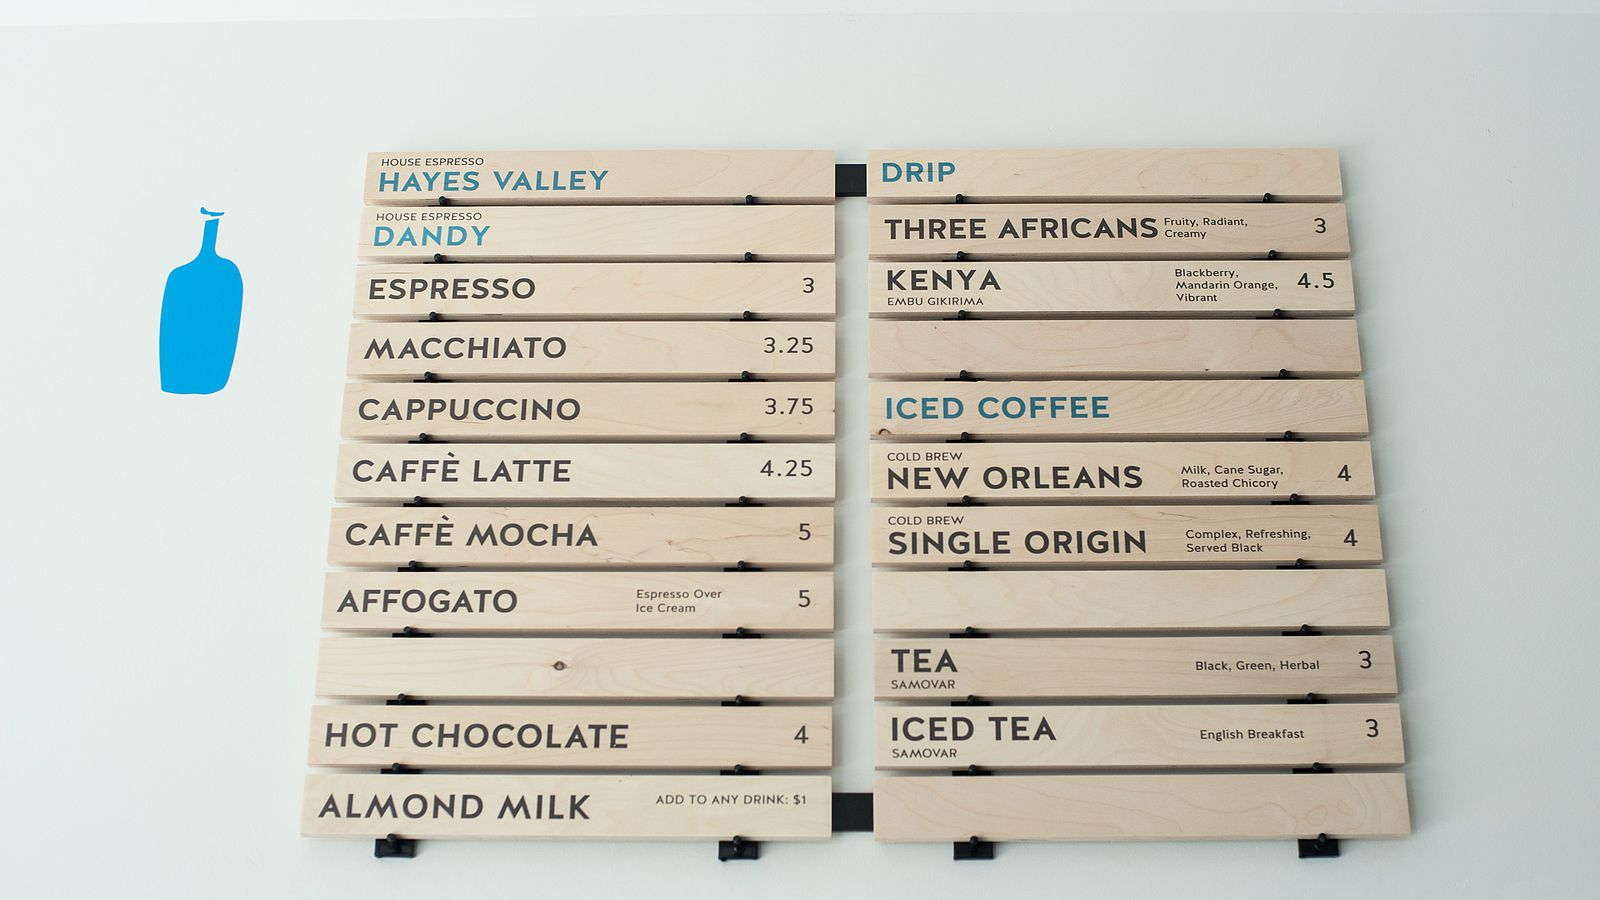 Blue Bottle Coffees Artsy Culver City Shop Opens Next